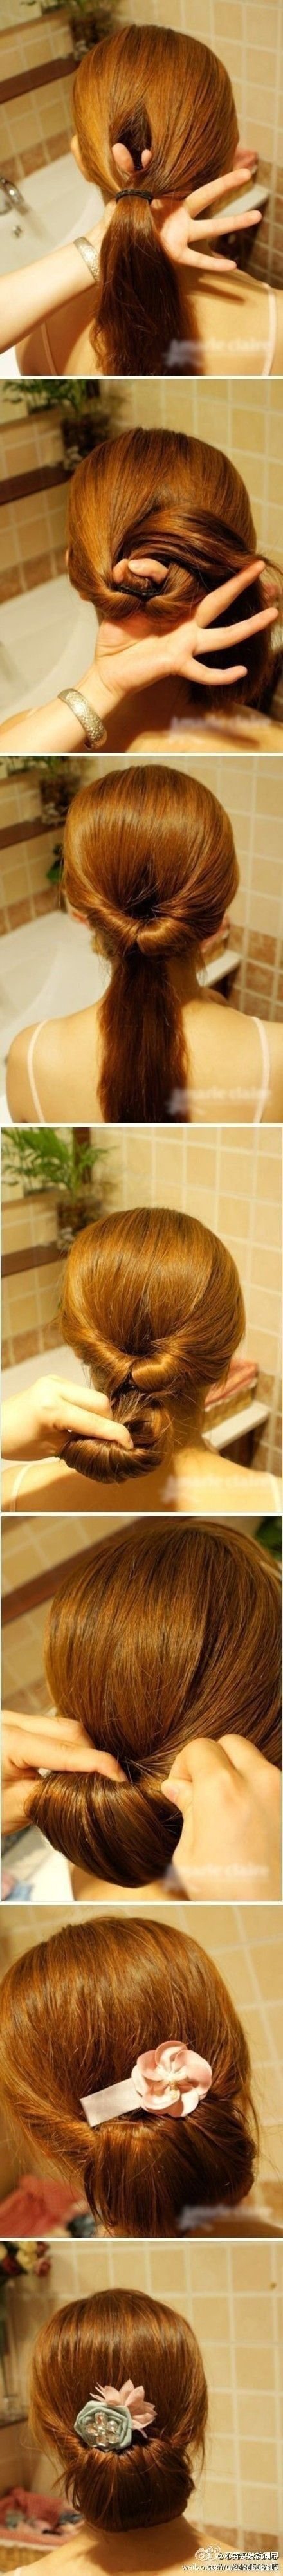 howto-guide-to-hairstyles-16